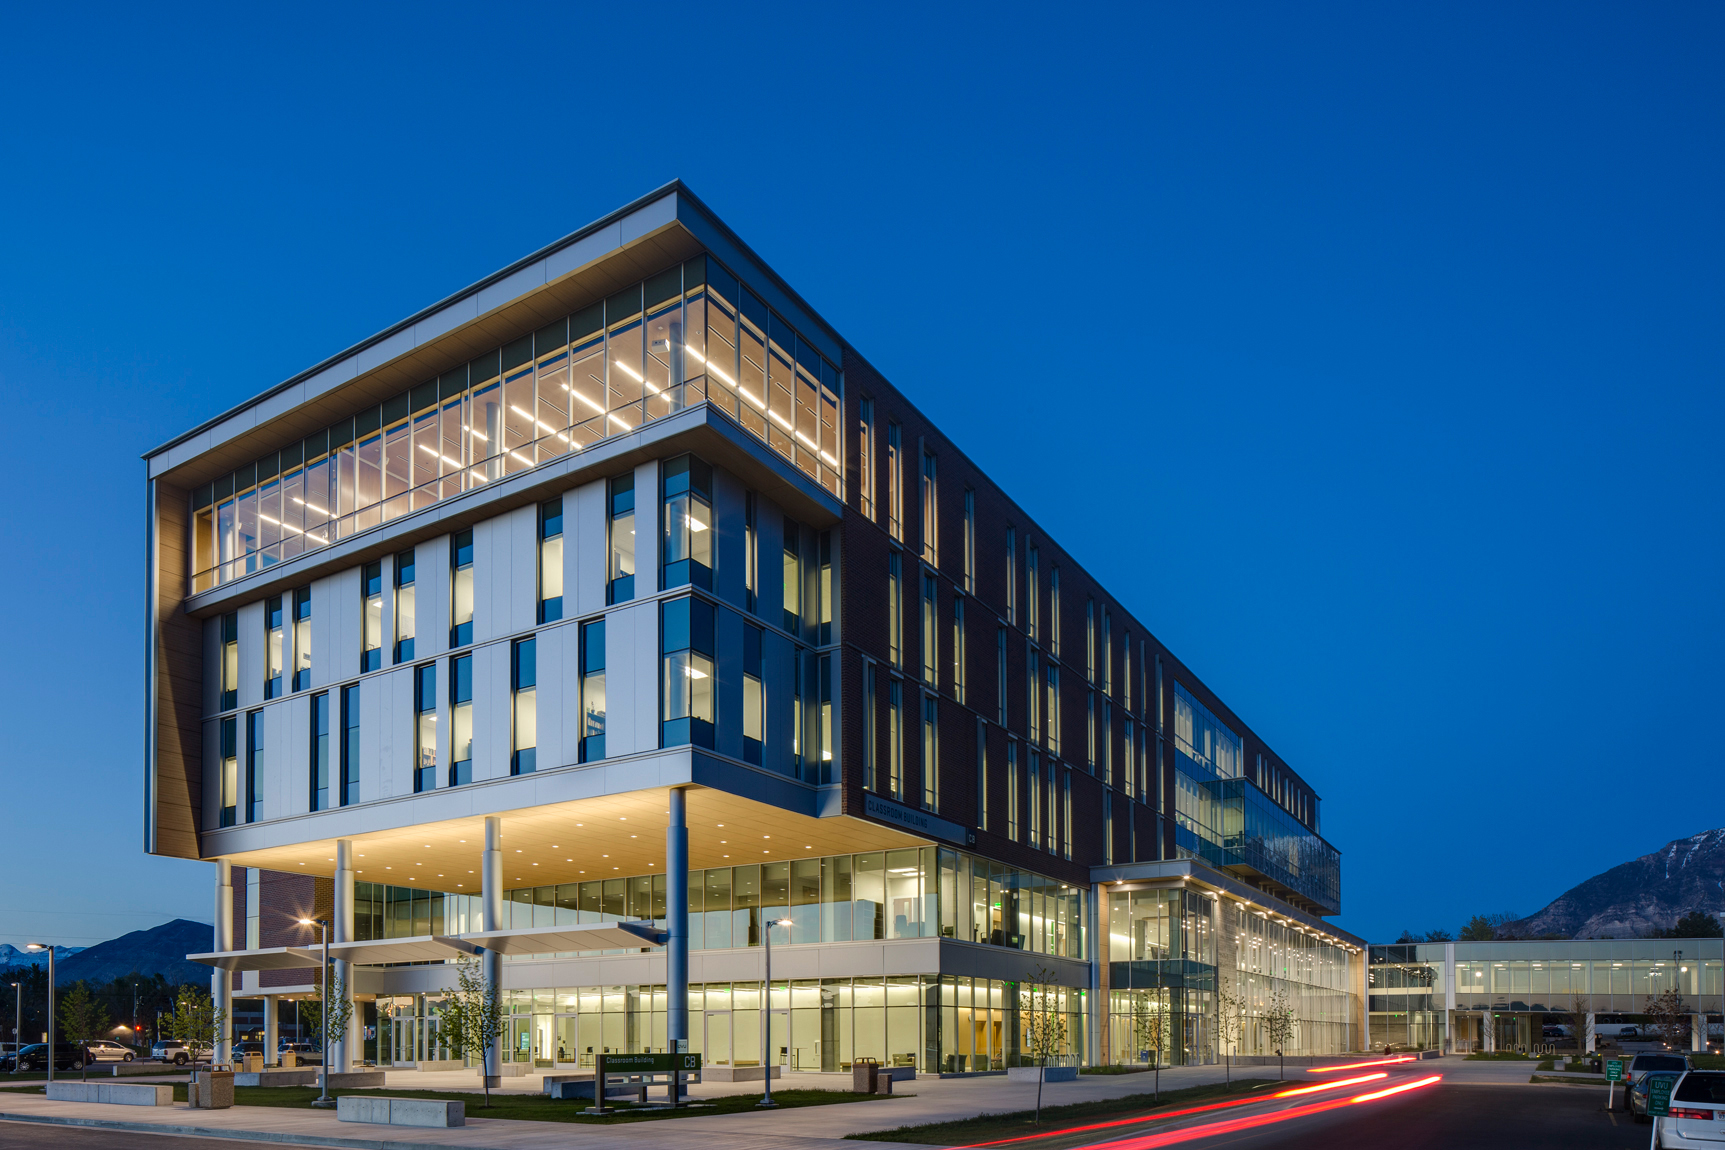 Exterior view at dusk of modern looking college classroom building as car drives thogh with red tail light tracers.Architectural Photography by: Paul Richer / RICHER IMAGES